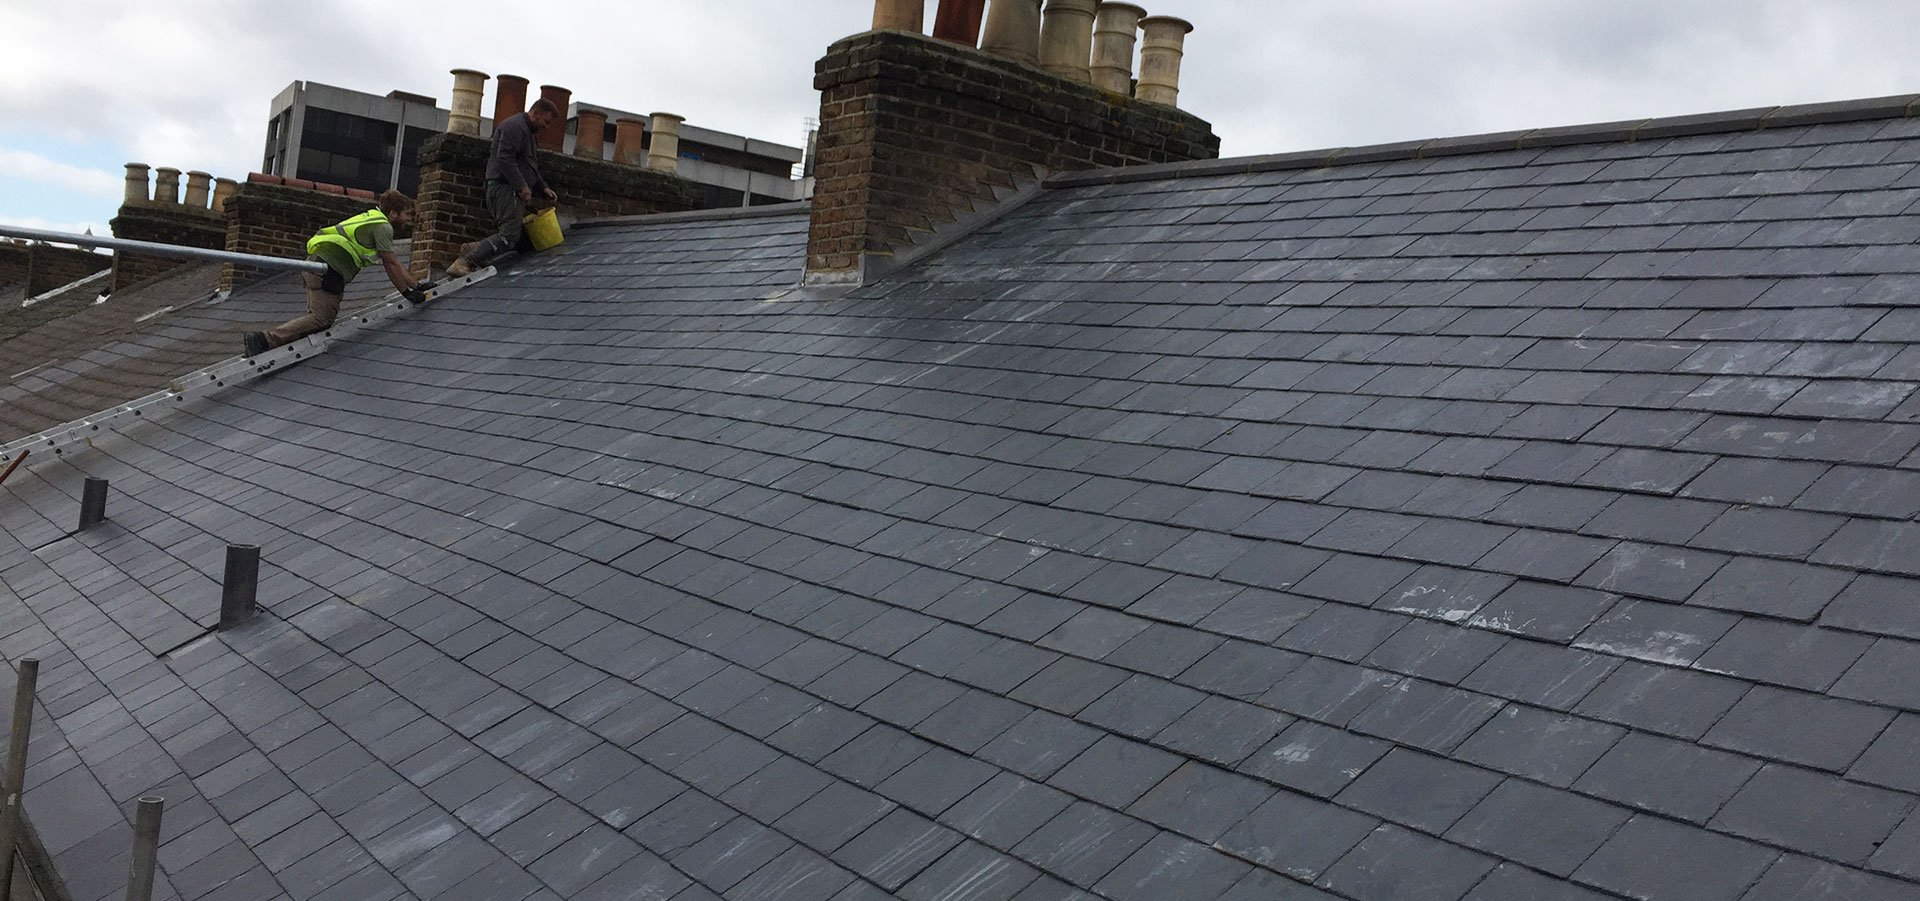 Slate roof roofing project